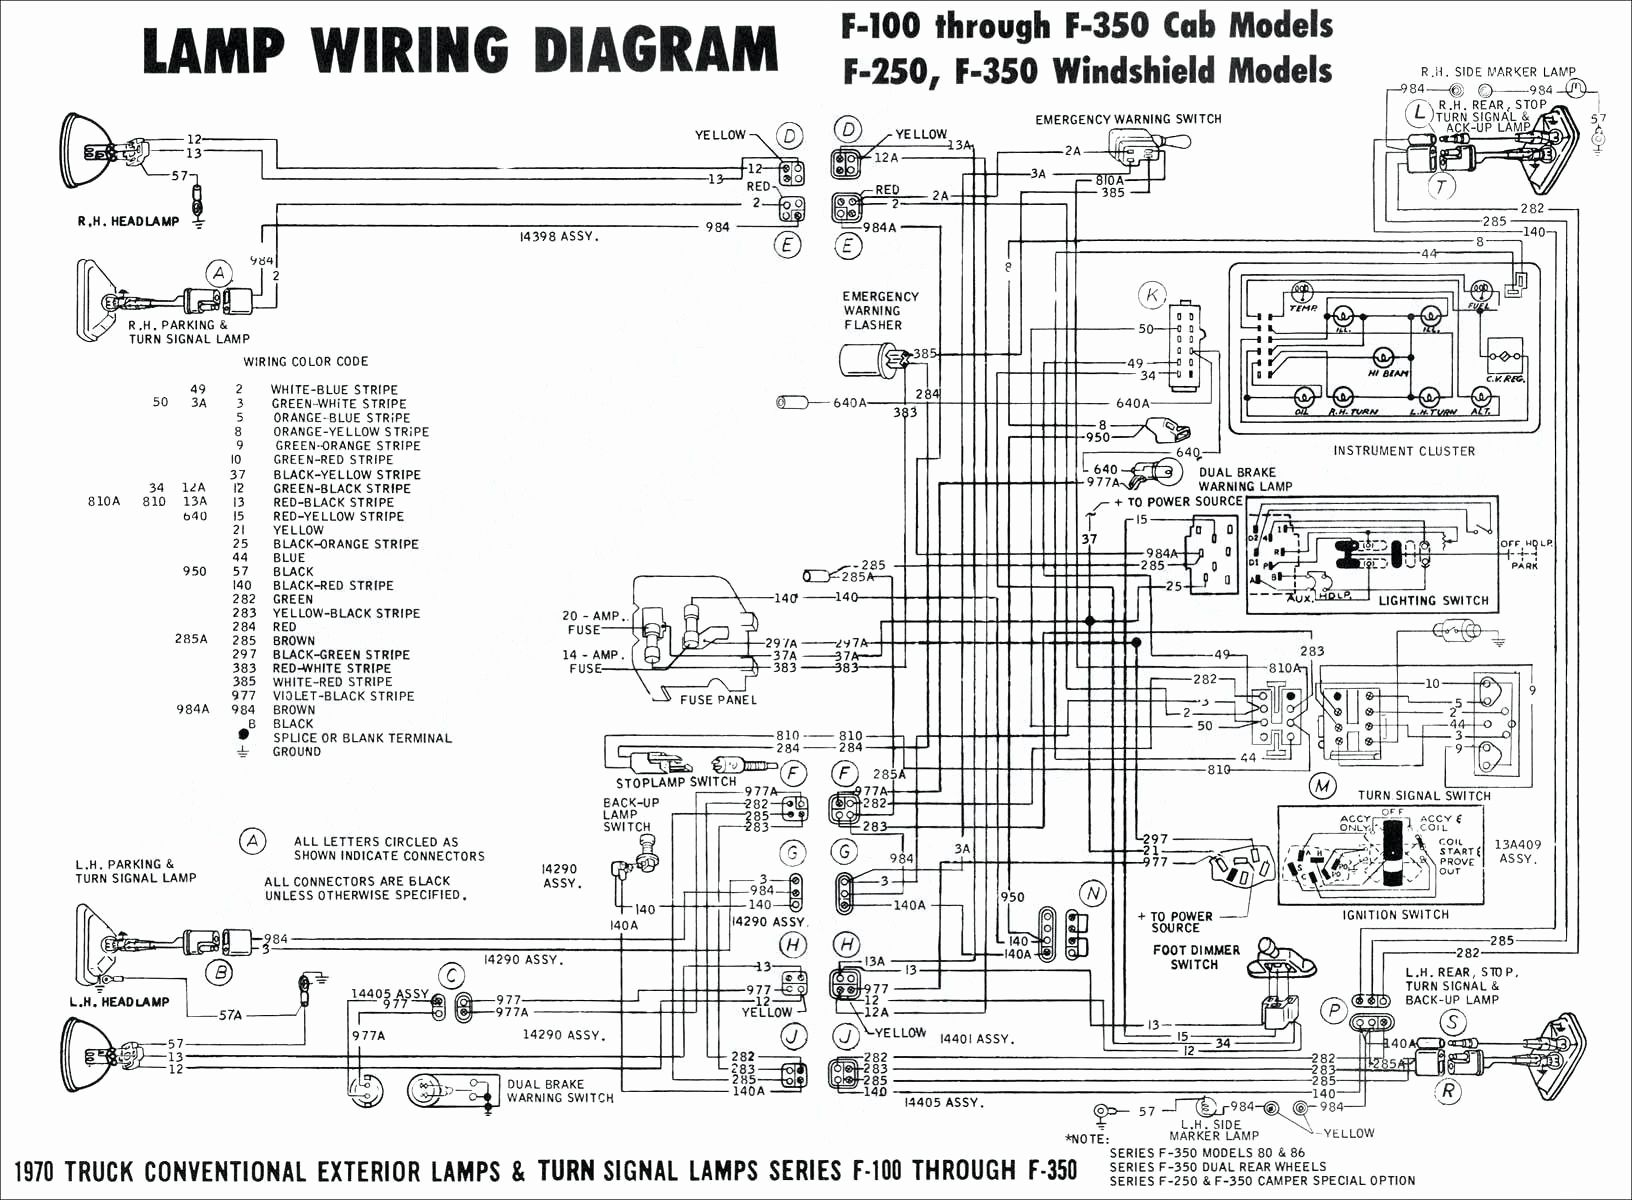 7 Pole Trailer Wiring Diagram - Wiring Diagrams Img - 7 Pole Trailer Wiring Diagram